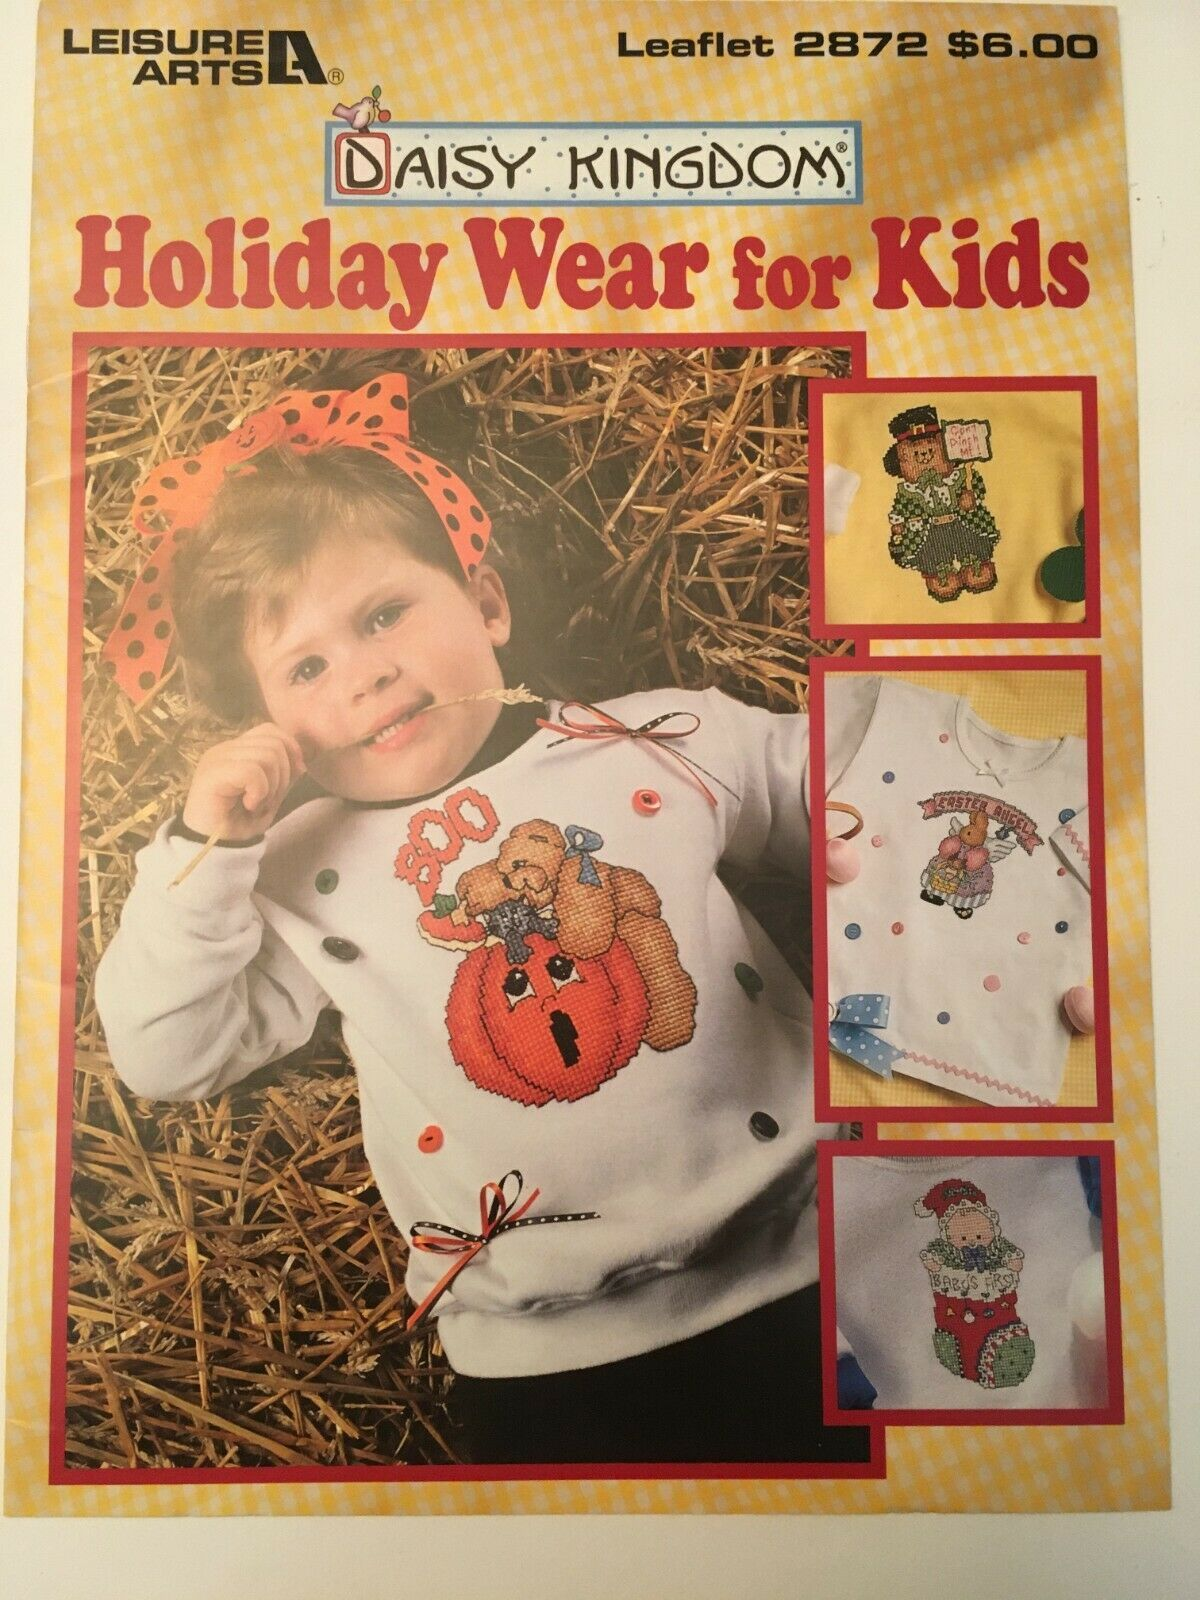 Daisy Kingdom Holiday Wear for Kids Counted Cross Stitch Patterns Leisure Arts - $3.00